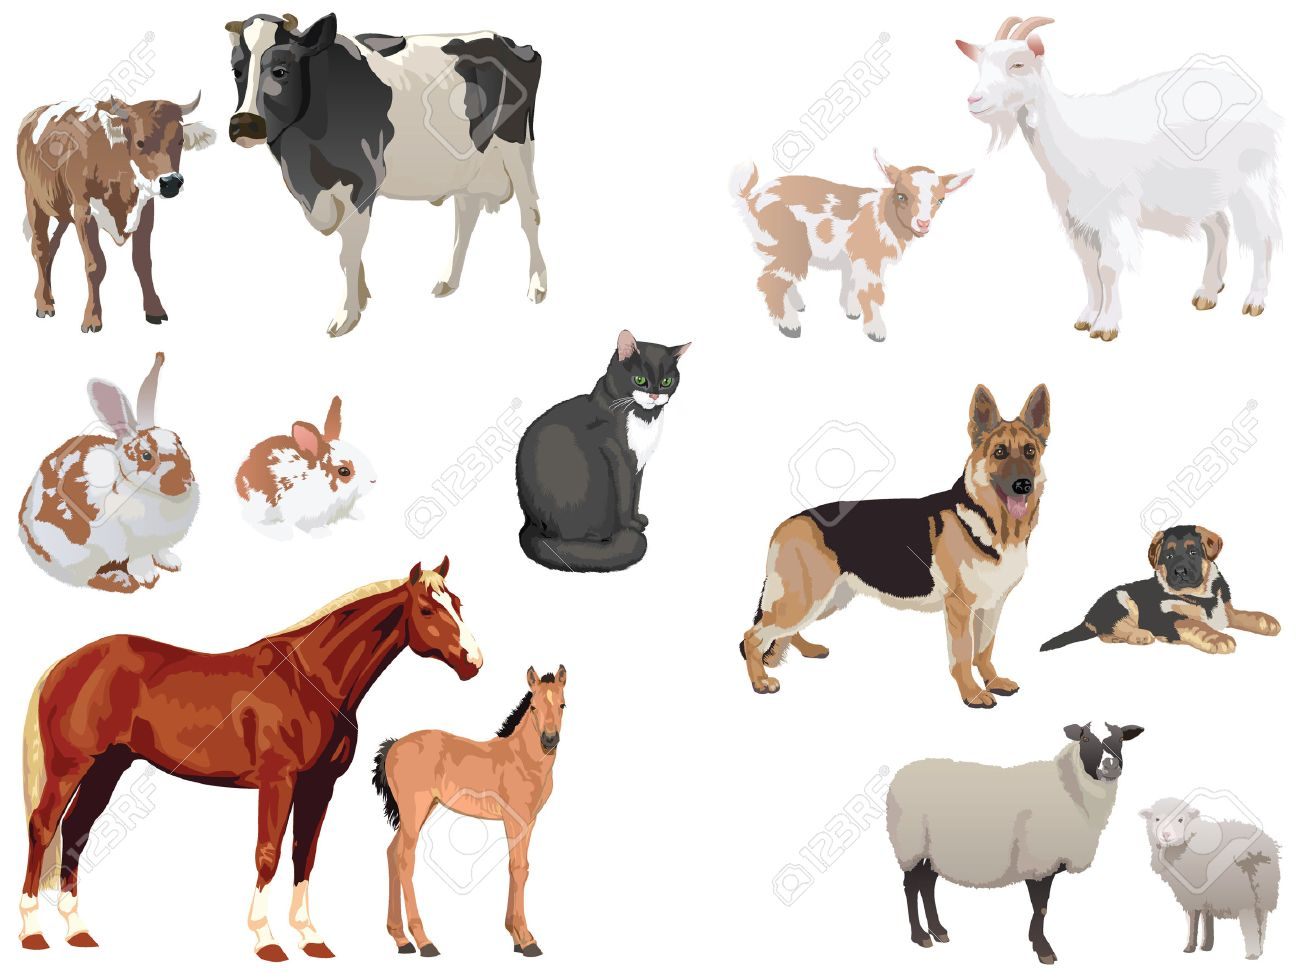 Clipart Set Of Domestic Animals With Cubs Royalty Free Cliparts Vectors And Stock Illustration Image 7508268